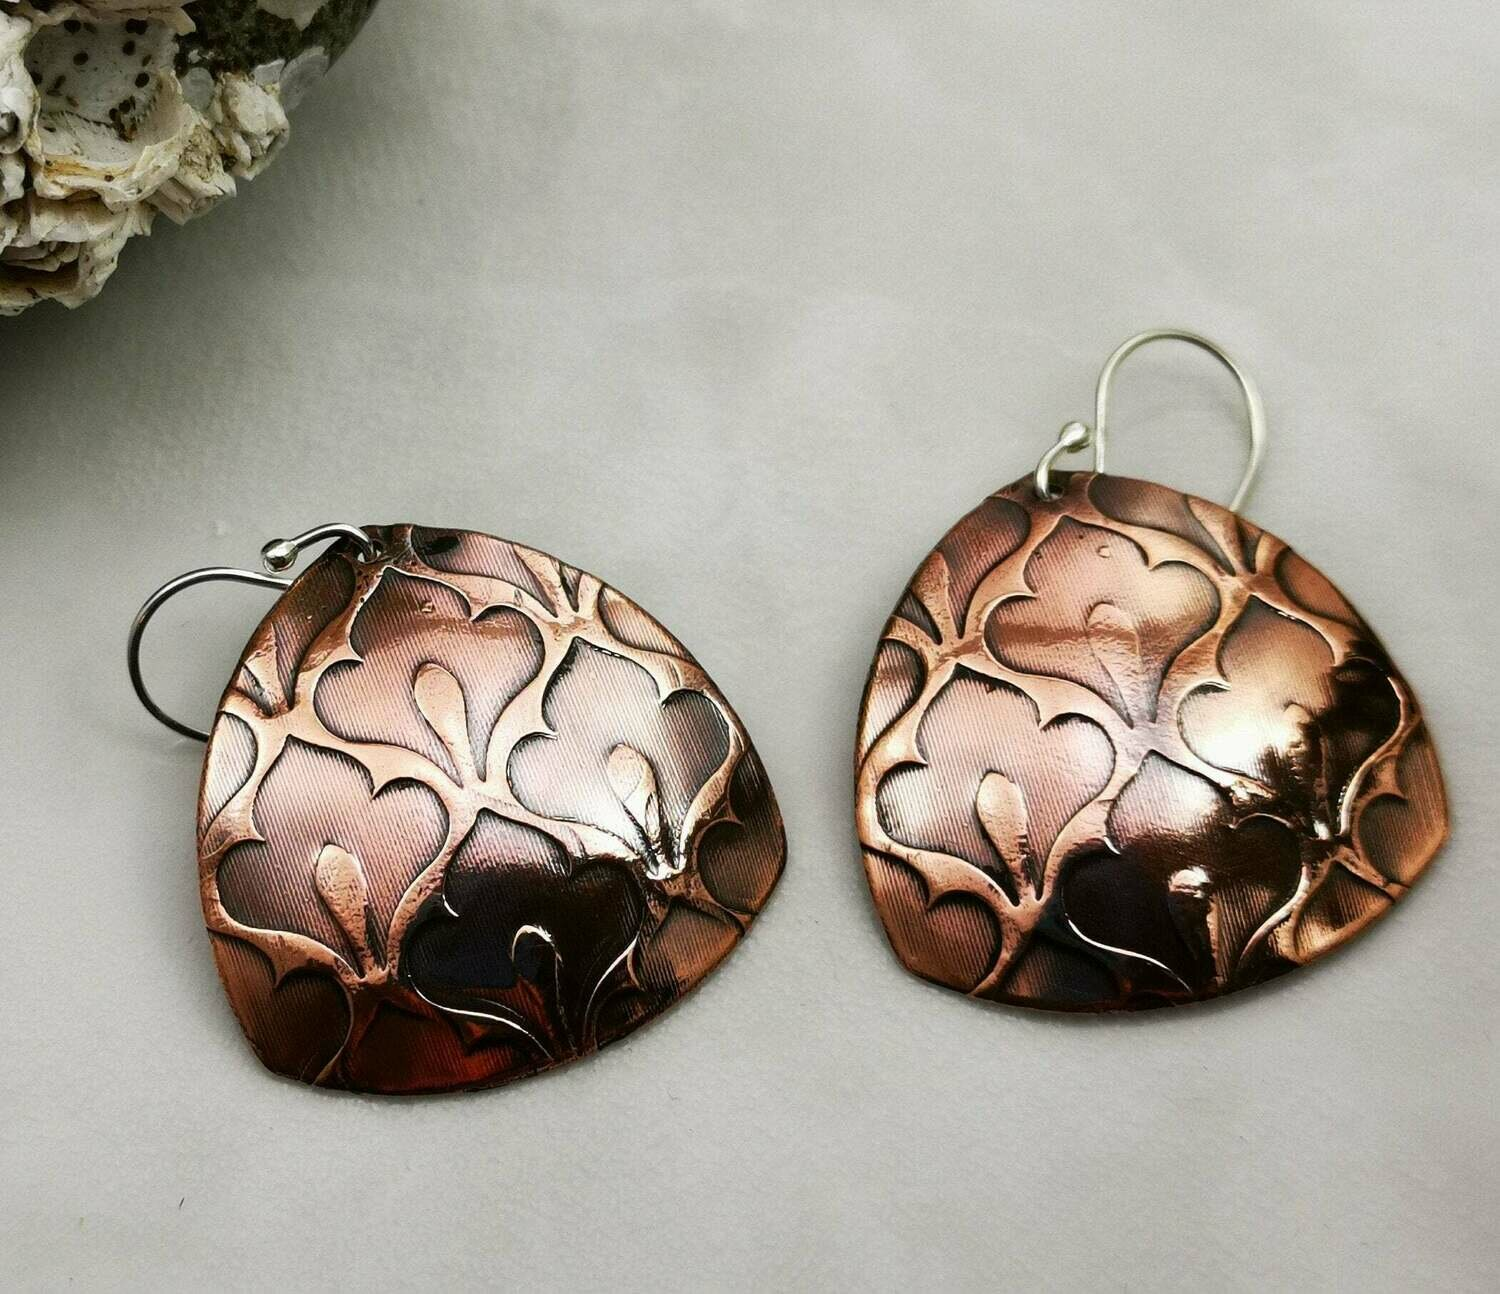 Dangle Earrings, Moroccan, Moroccan Jewelry, Moroccan Design, Moroccan Earrings, Moroccan Jewelry, Copper Jewelry, Copper Earrings